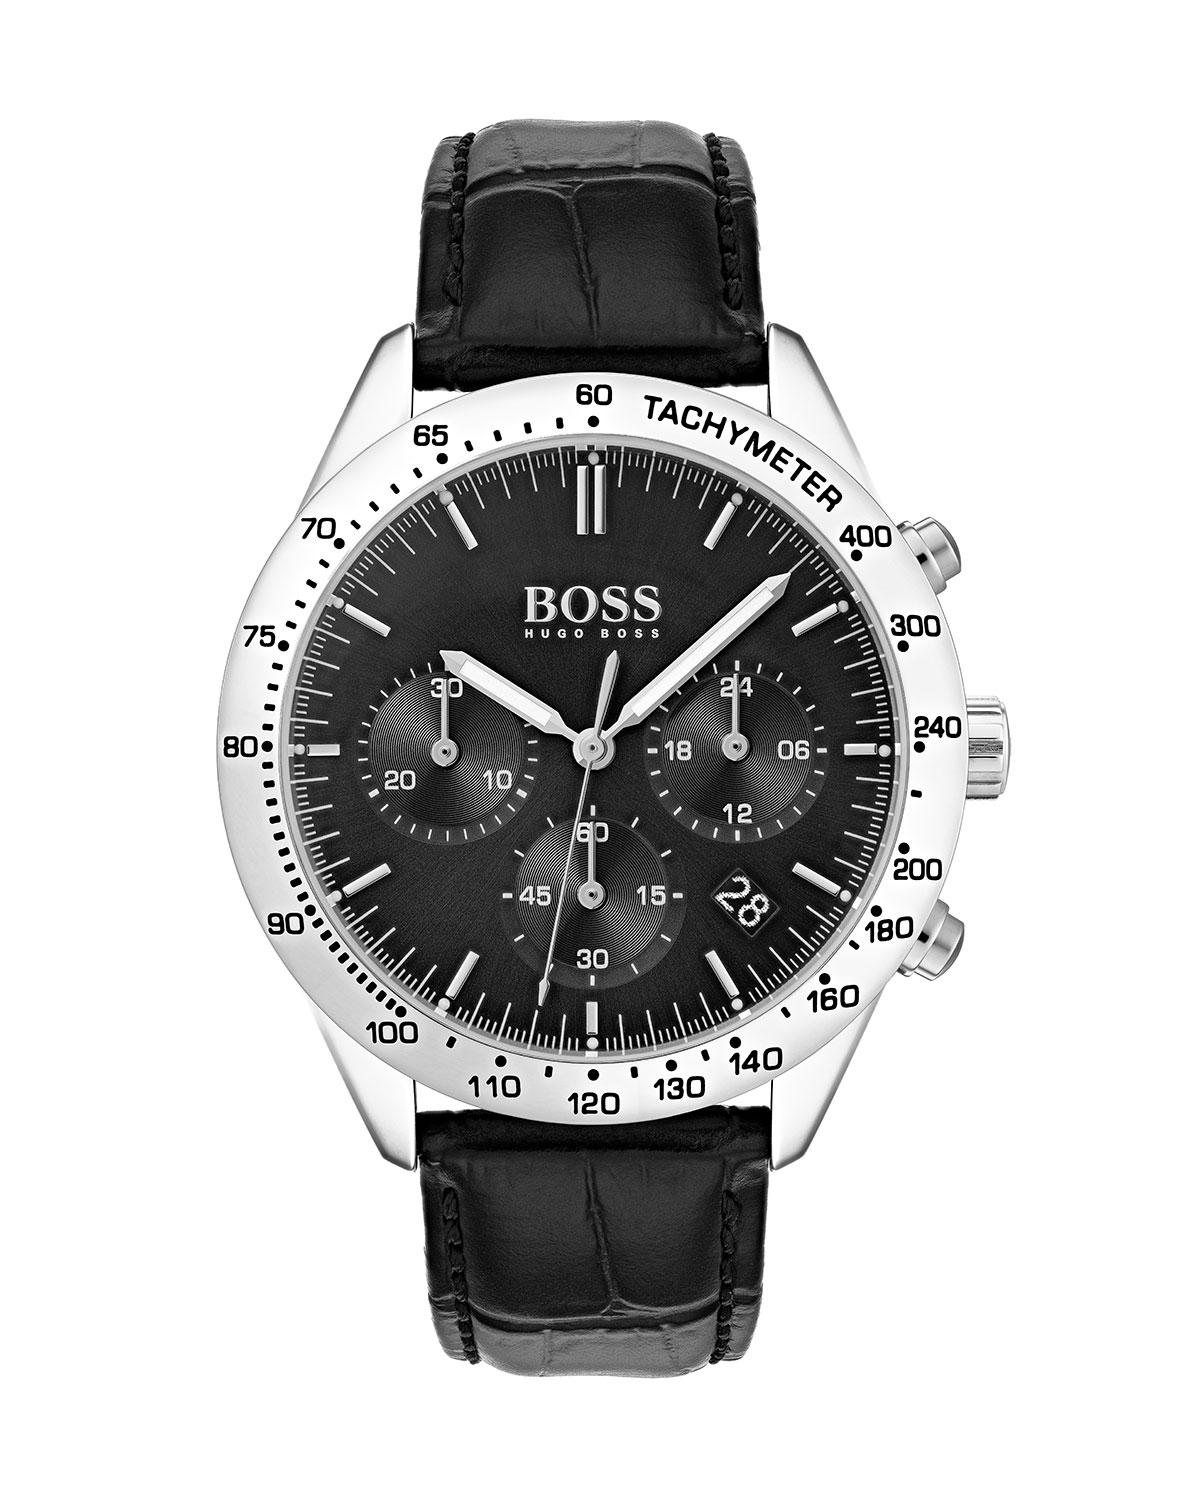 601c2218c Hugo Boss Men's Talent Chronograph Watch with Leather Strap, Black ...